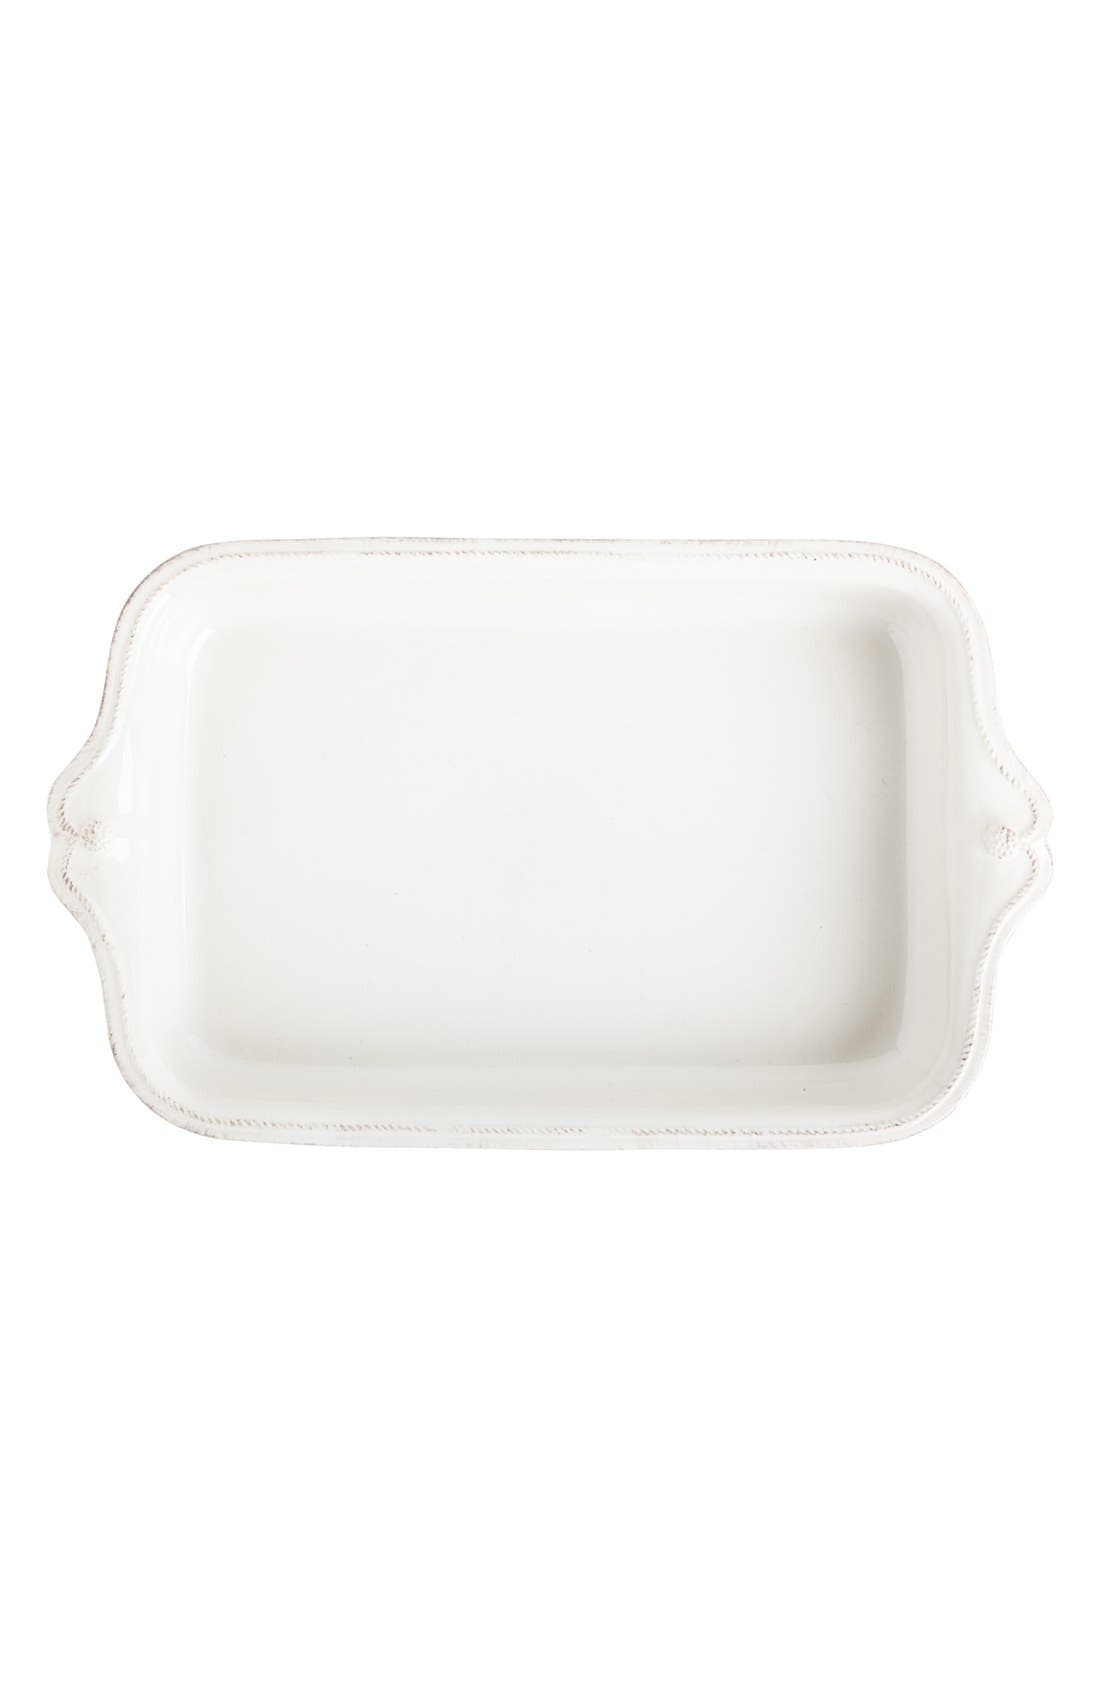 'Berry and Thread' Rectangular Baking Dish,                             Main thumbnail 1, color,                             WHITEWASH